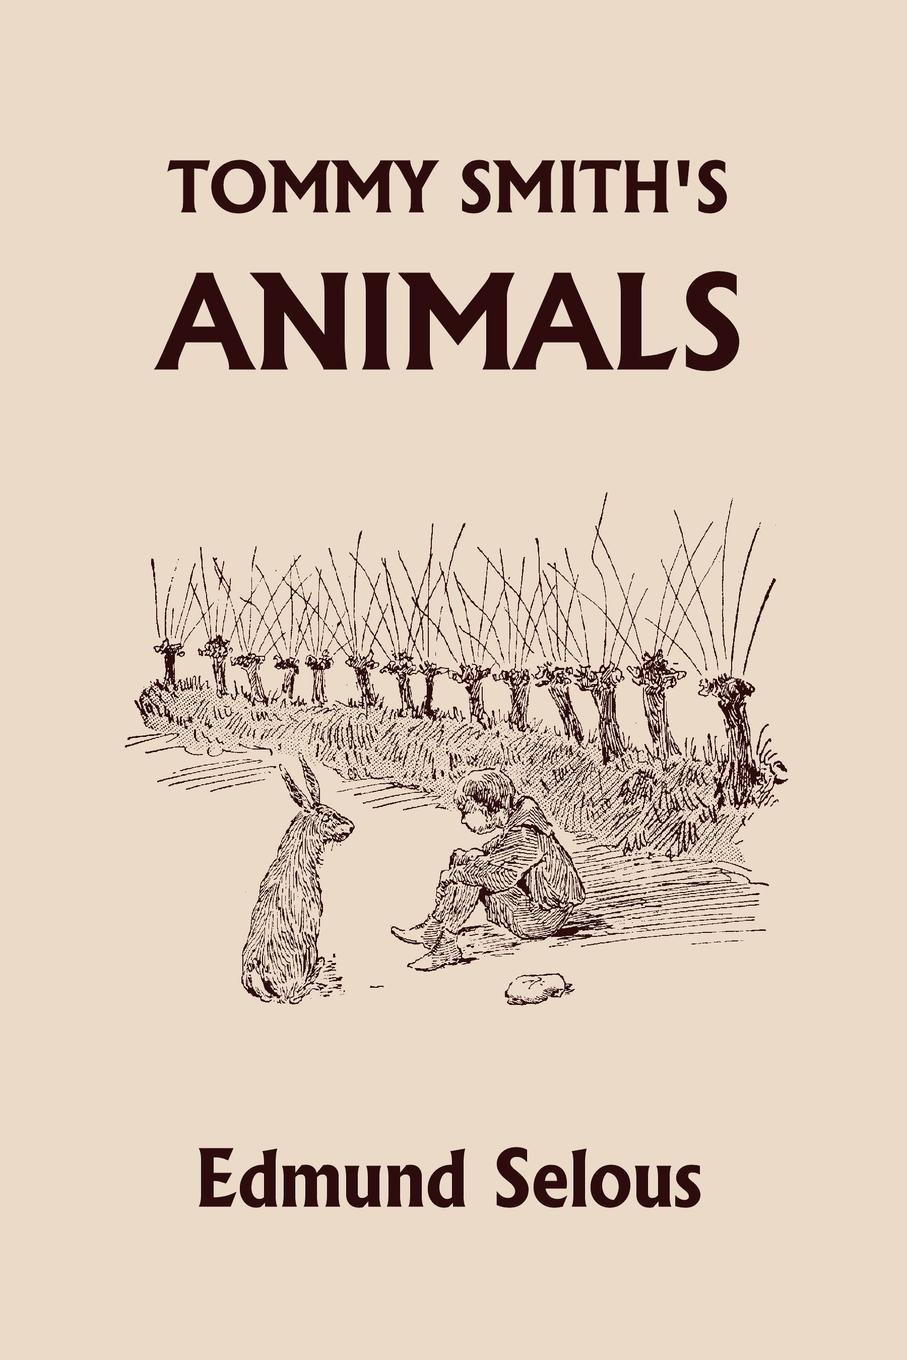 Tommy Smith's Animals (Yesterday's Classics): Edmund Selous, G. W. Ord:  9781599153766: Amazon.com: Books